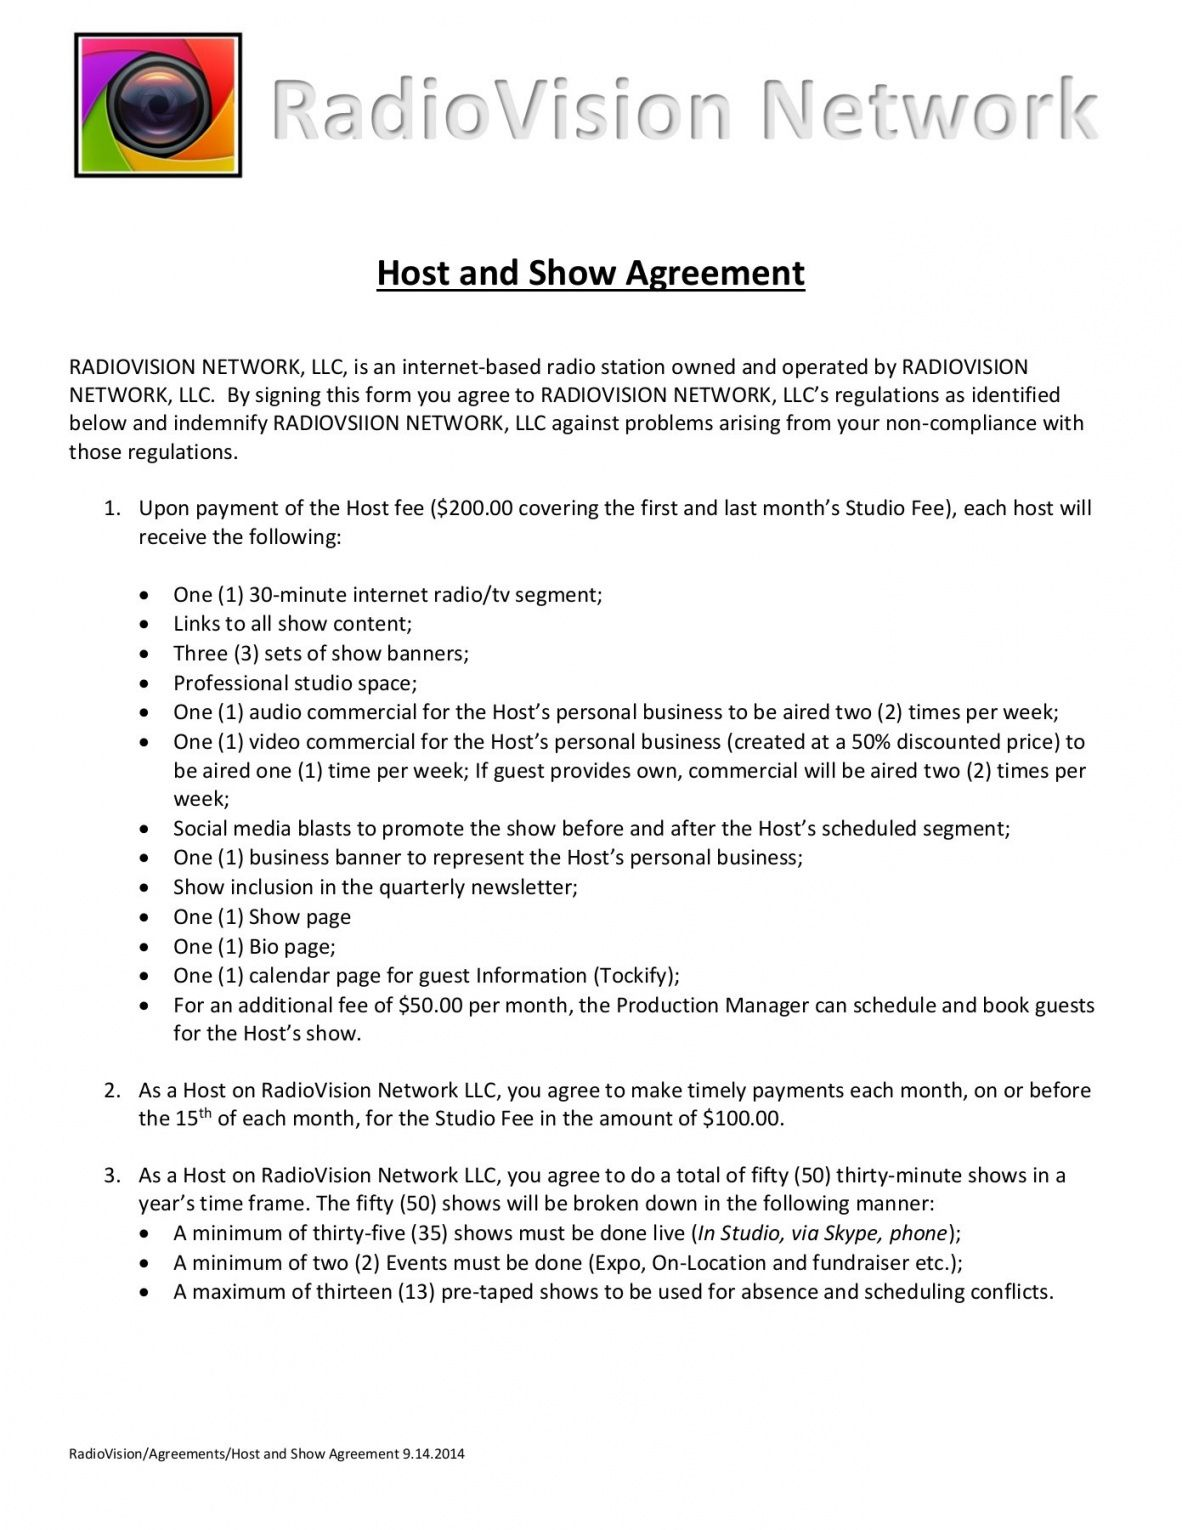 printable host and show agreement 9142014 host agreement template excel